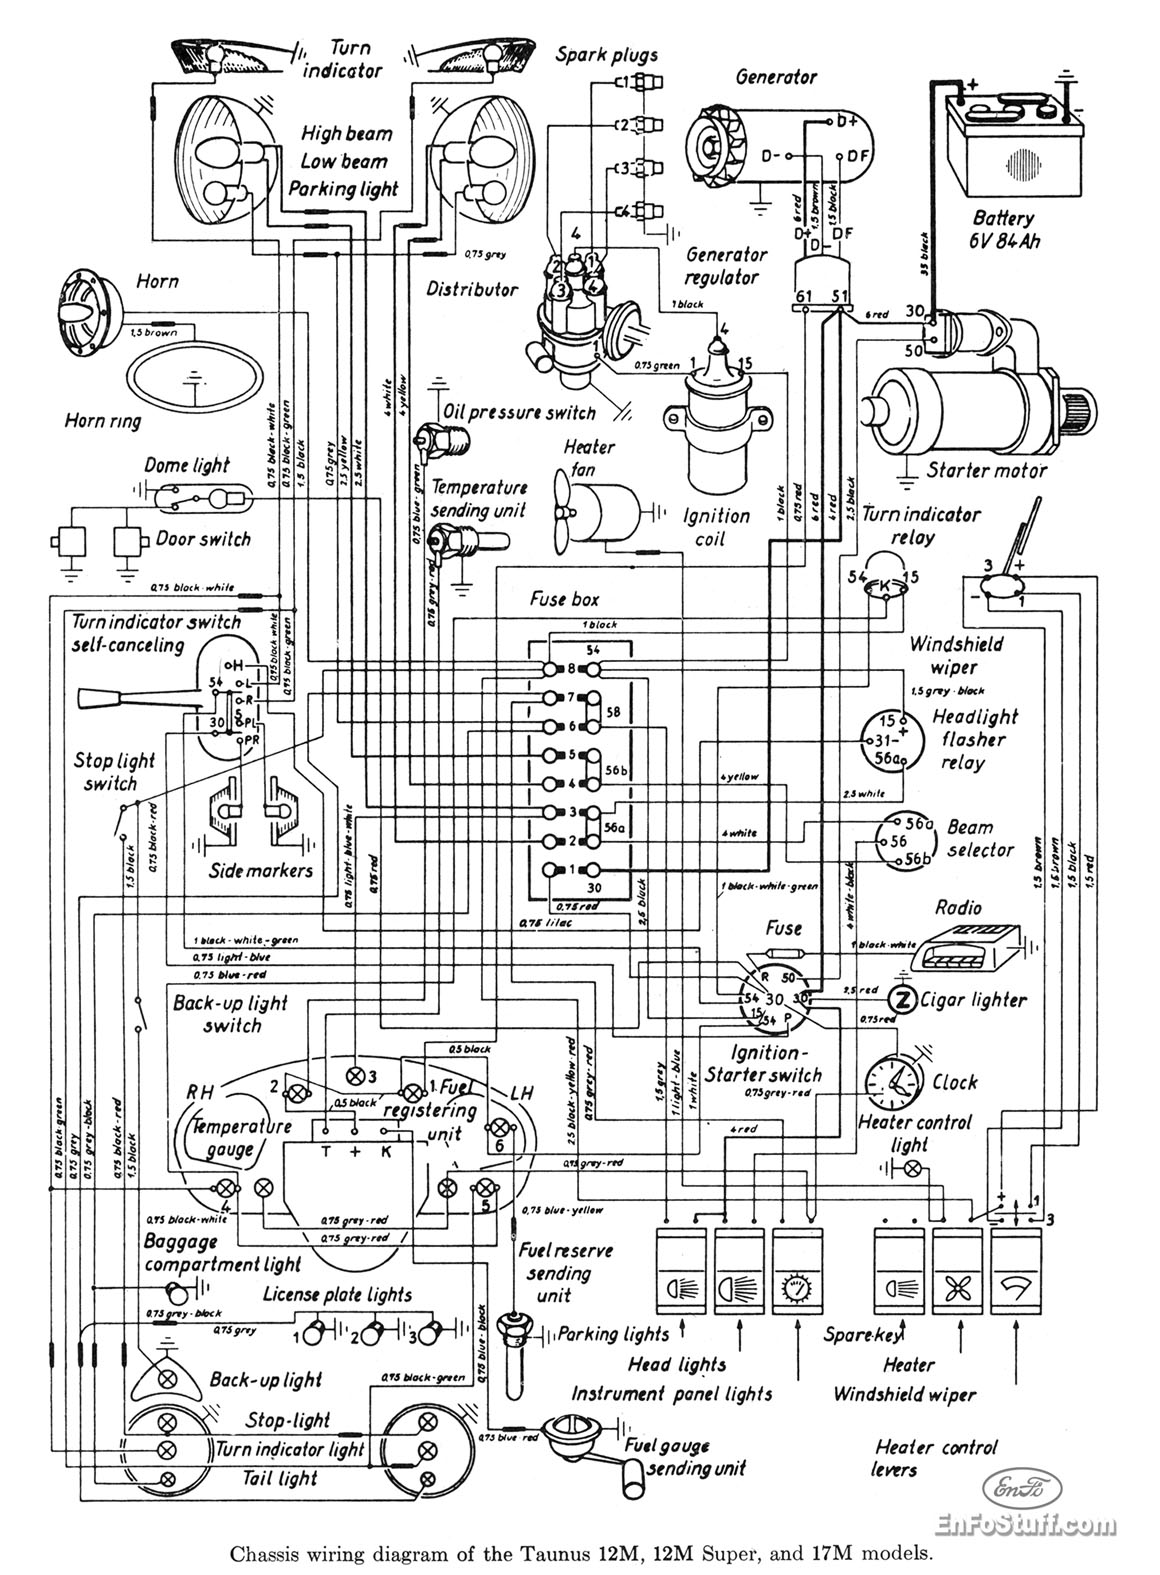 Nice mitsubishi l200 wiring diagram frieze best images for wiring mitsubishi storm l200 wiring diagram ford transmission wiring diagrams swarovskicordoba Image collections